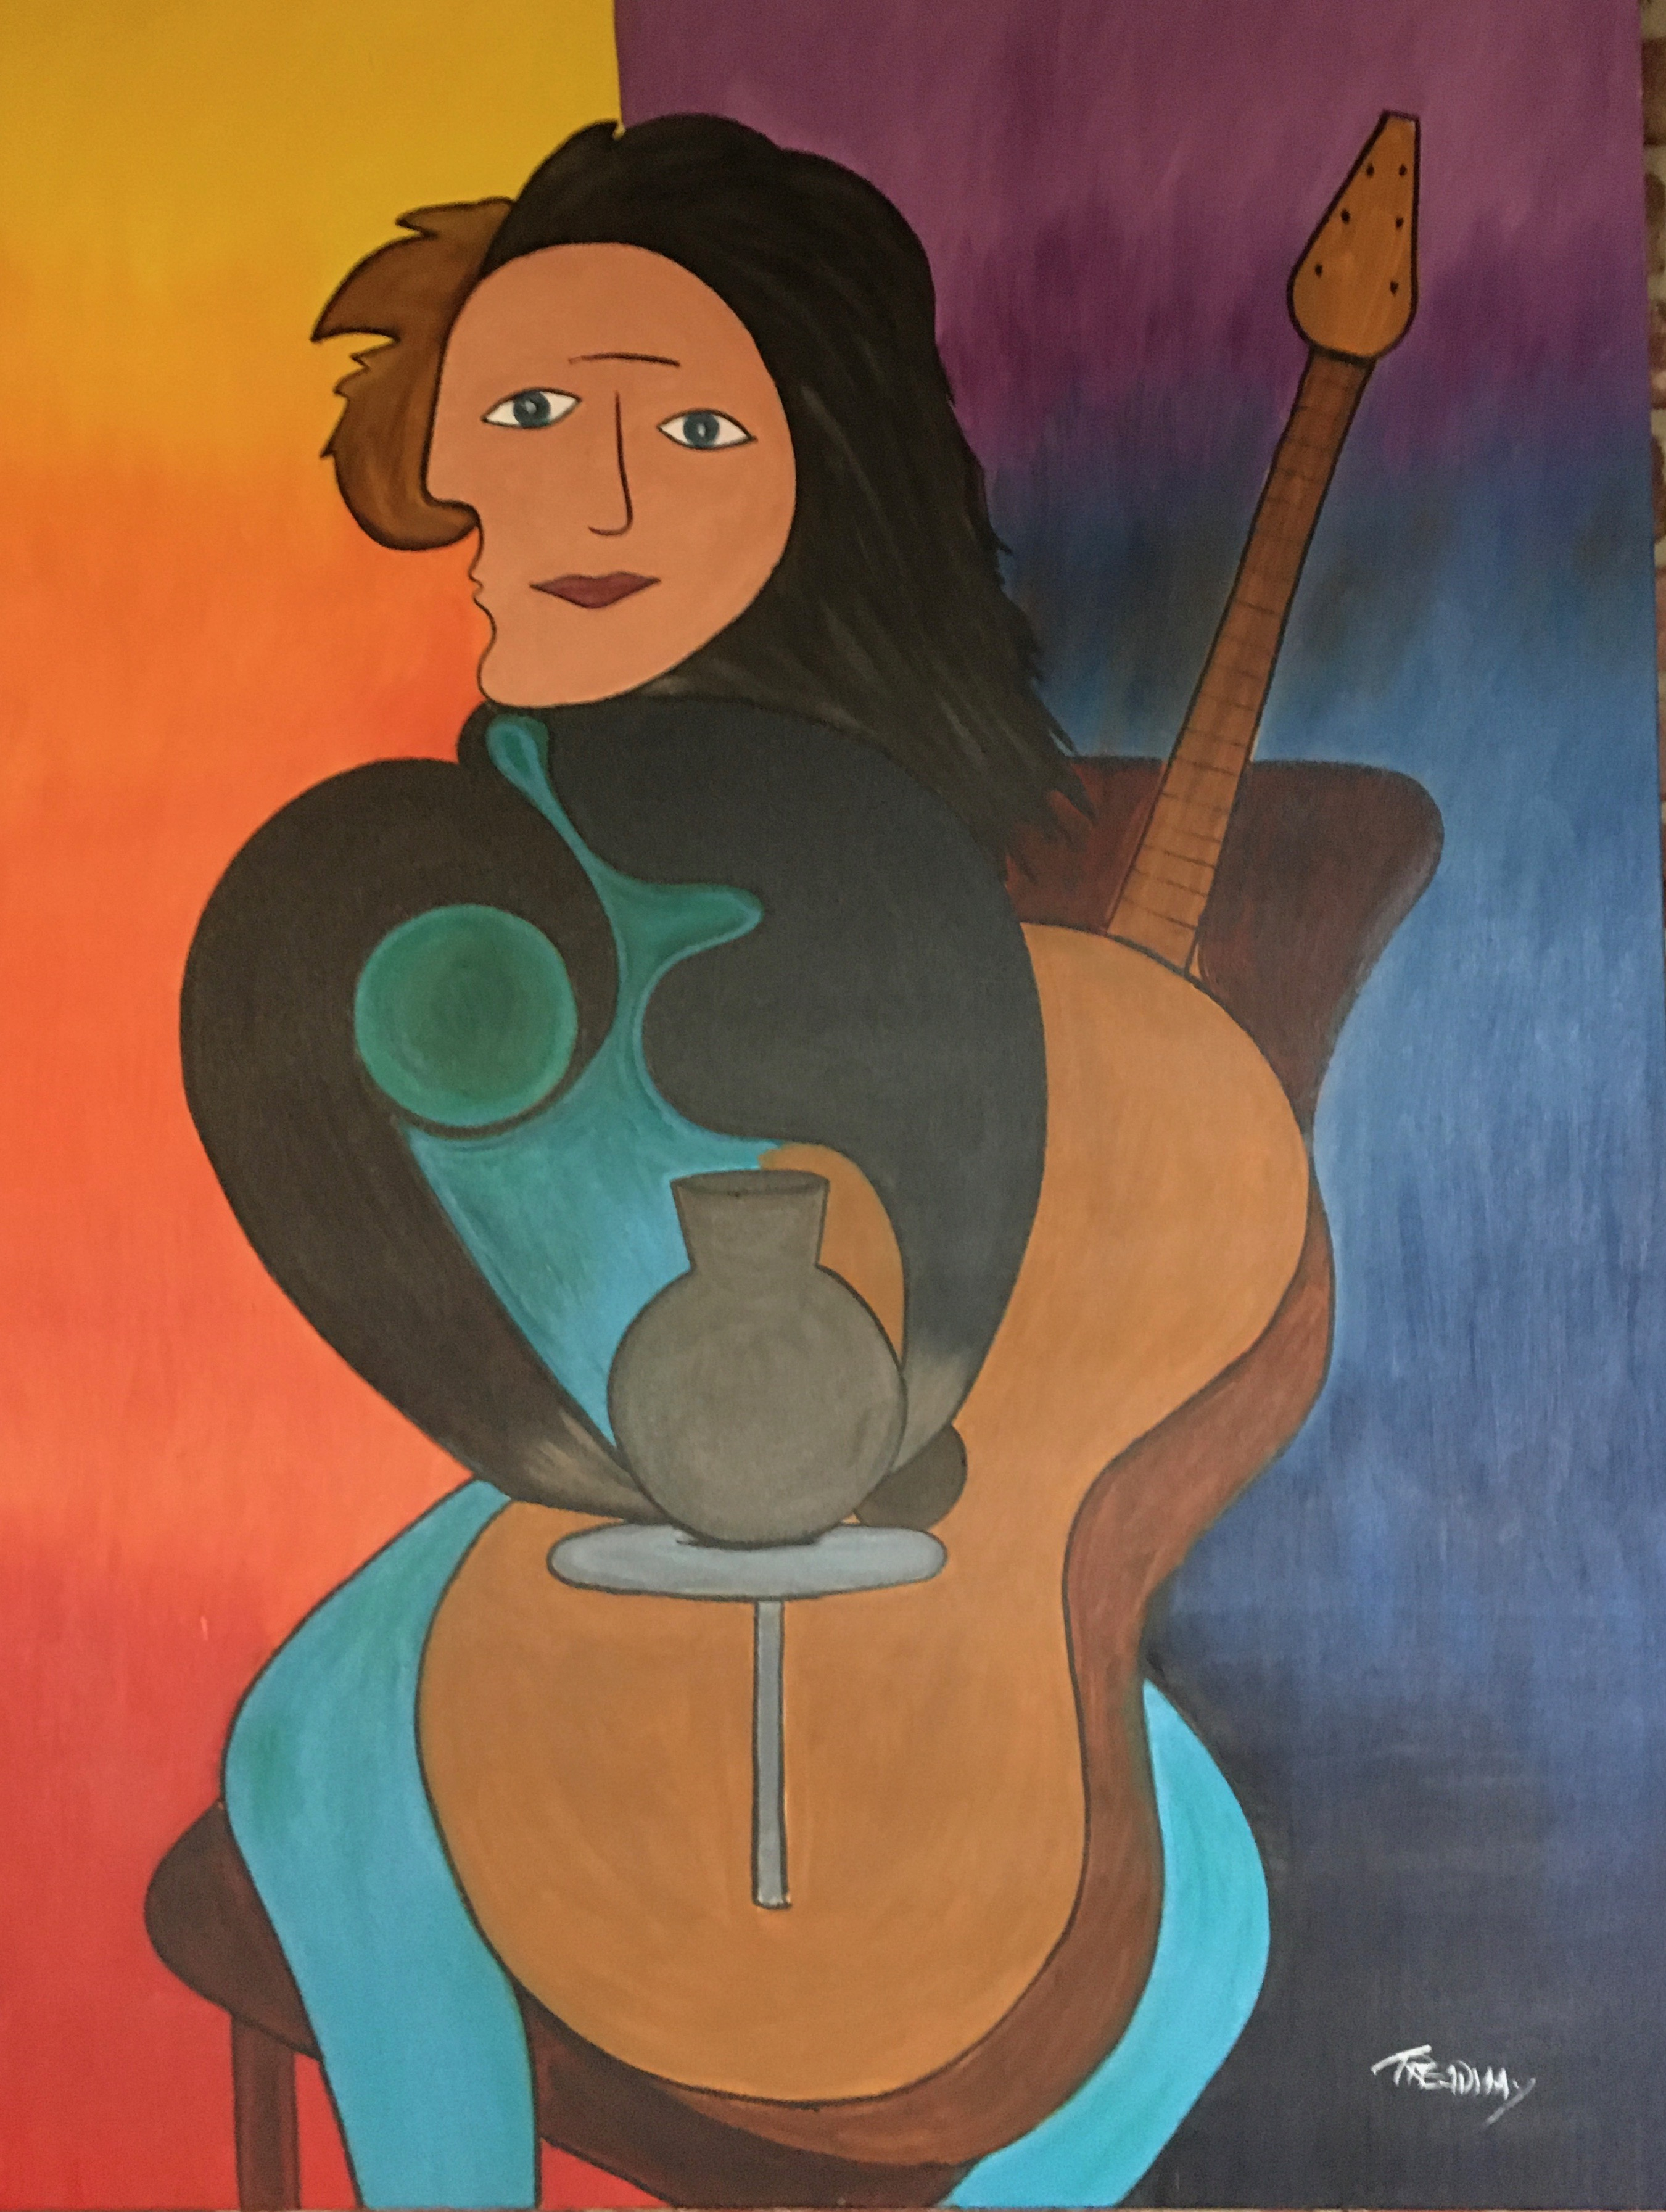 Carrie Potter Musician artwork by Wilton A Treadway - art listed for sale on Artplode